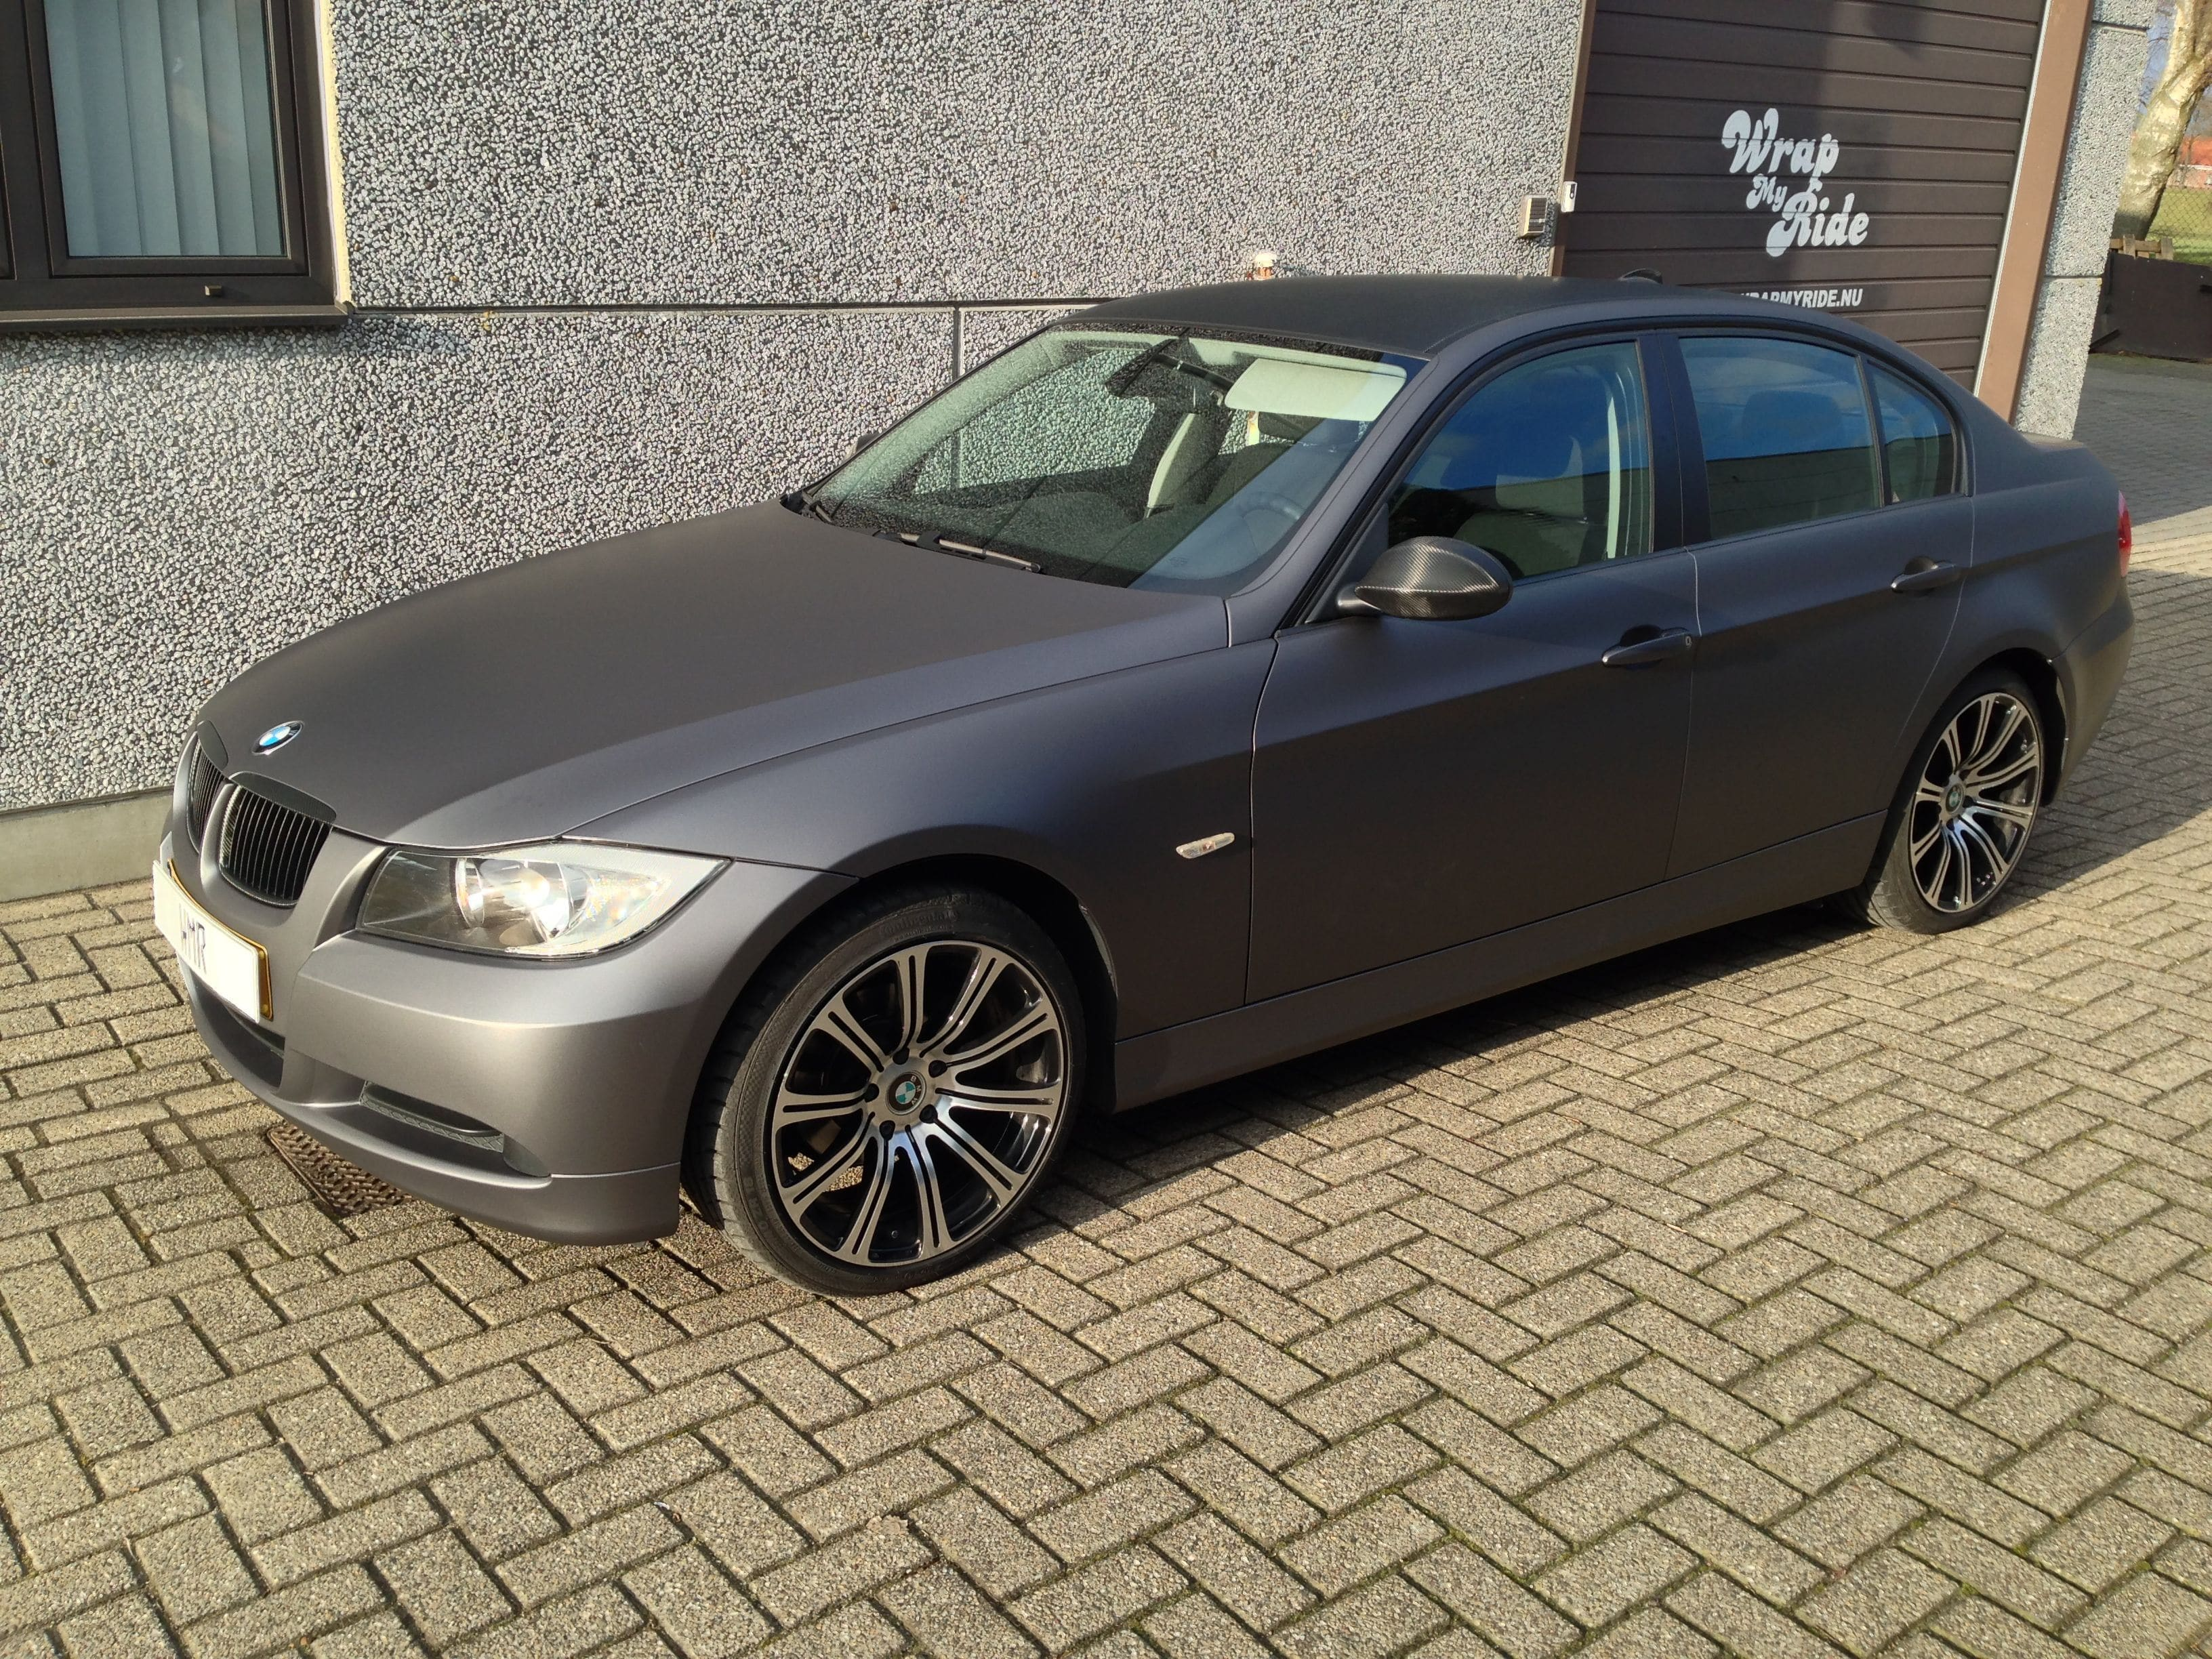 BMW E90 met Gunpowder Wrap, Carwrapping door Wrapmyride.nu Foto-nr:5378, ©2021